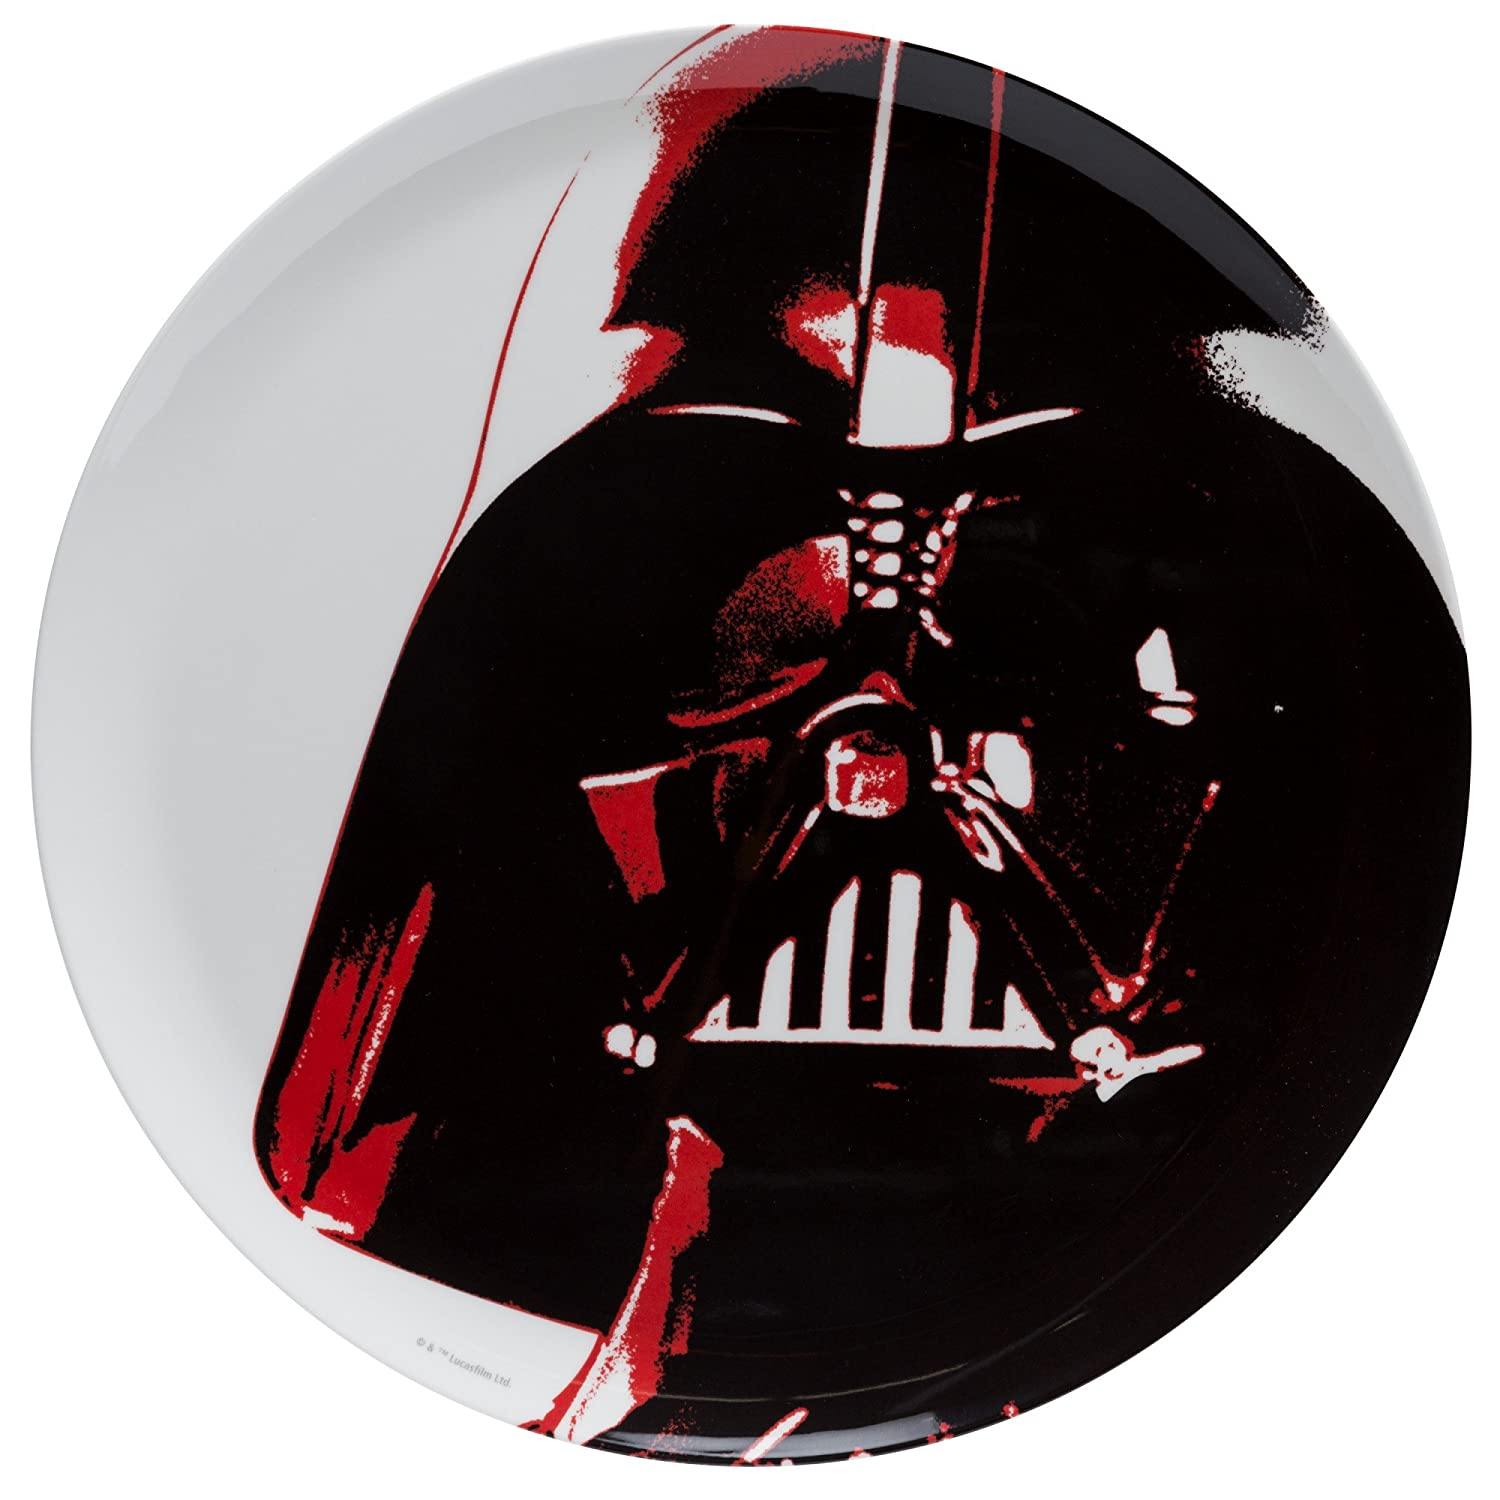 The Force Awakens C-3PO R2-D2 and BB-8 Plastic Cereal Bowl 5 Inch Zak Designs Star Wars